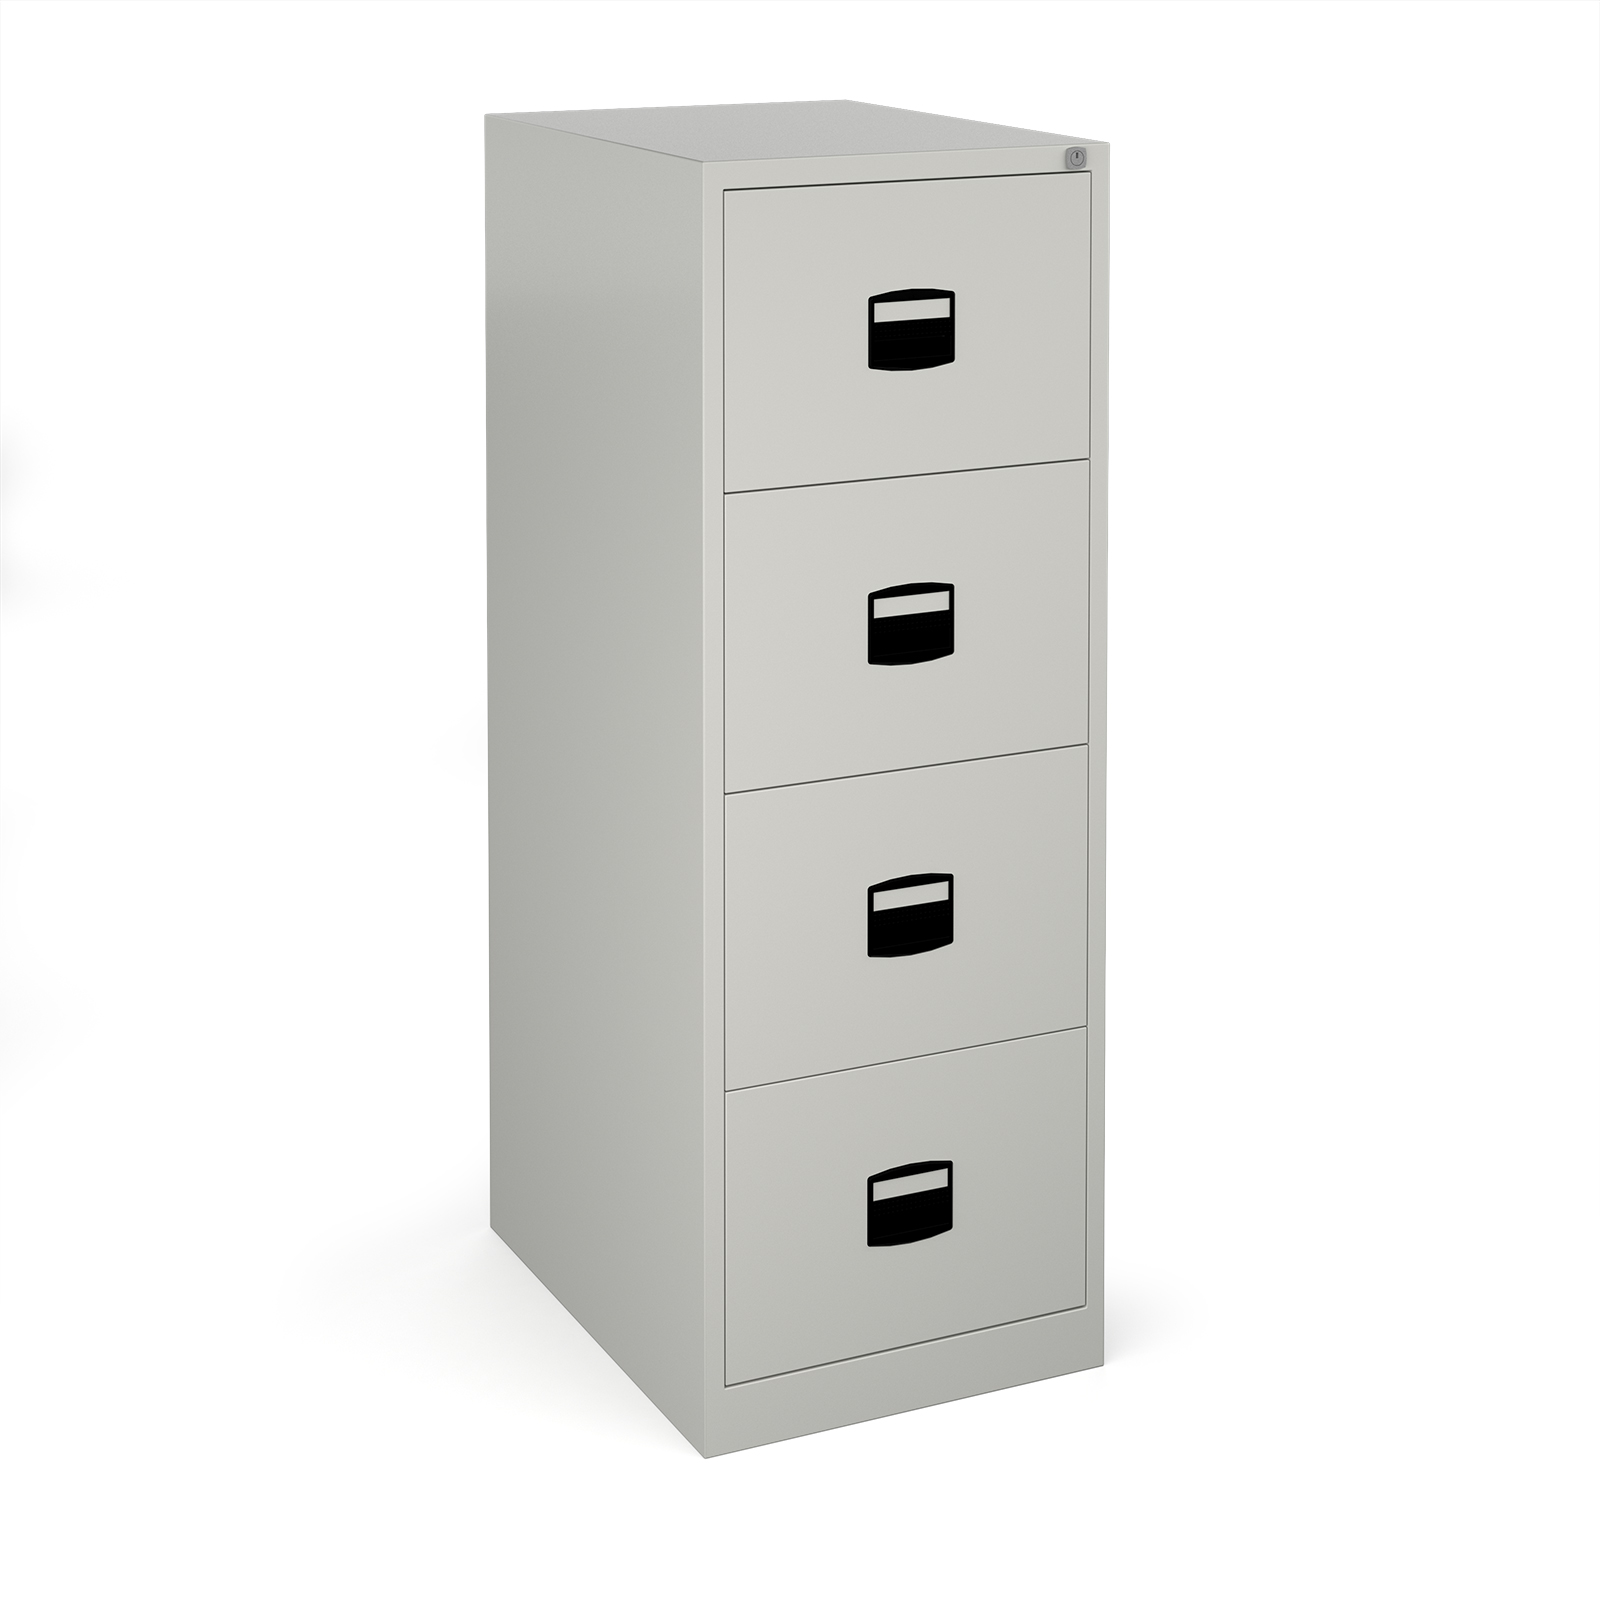 Steel Steel 4 drawer contract filing cabinet 1321mm high - goose grey